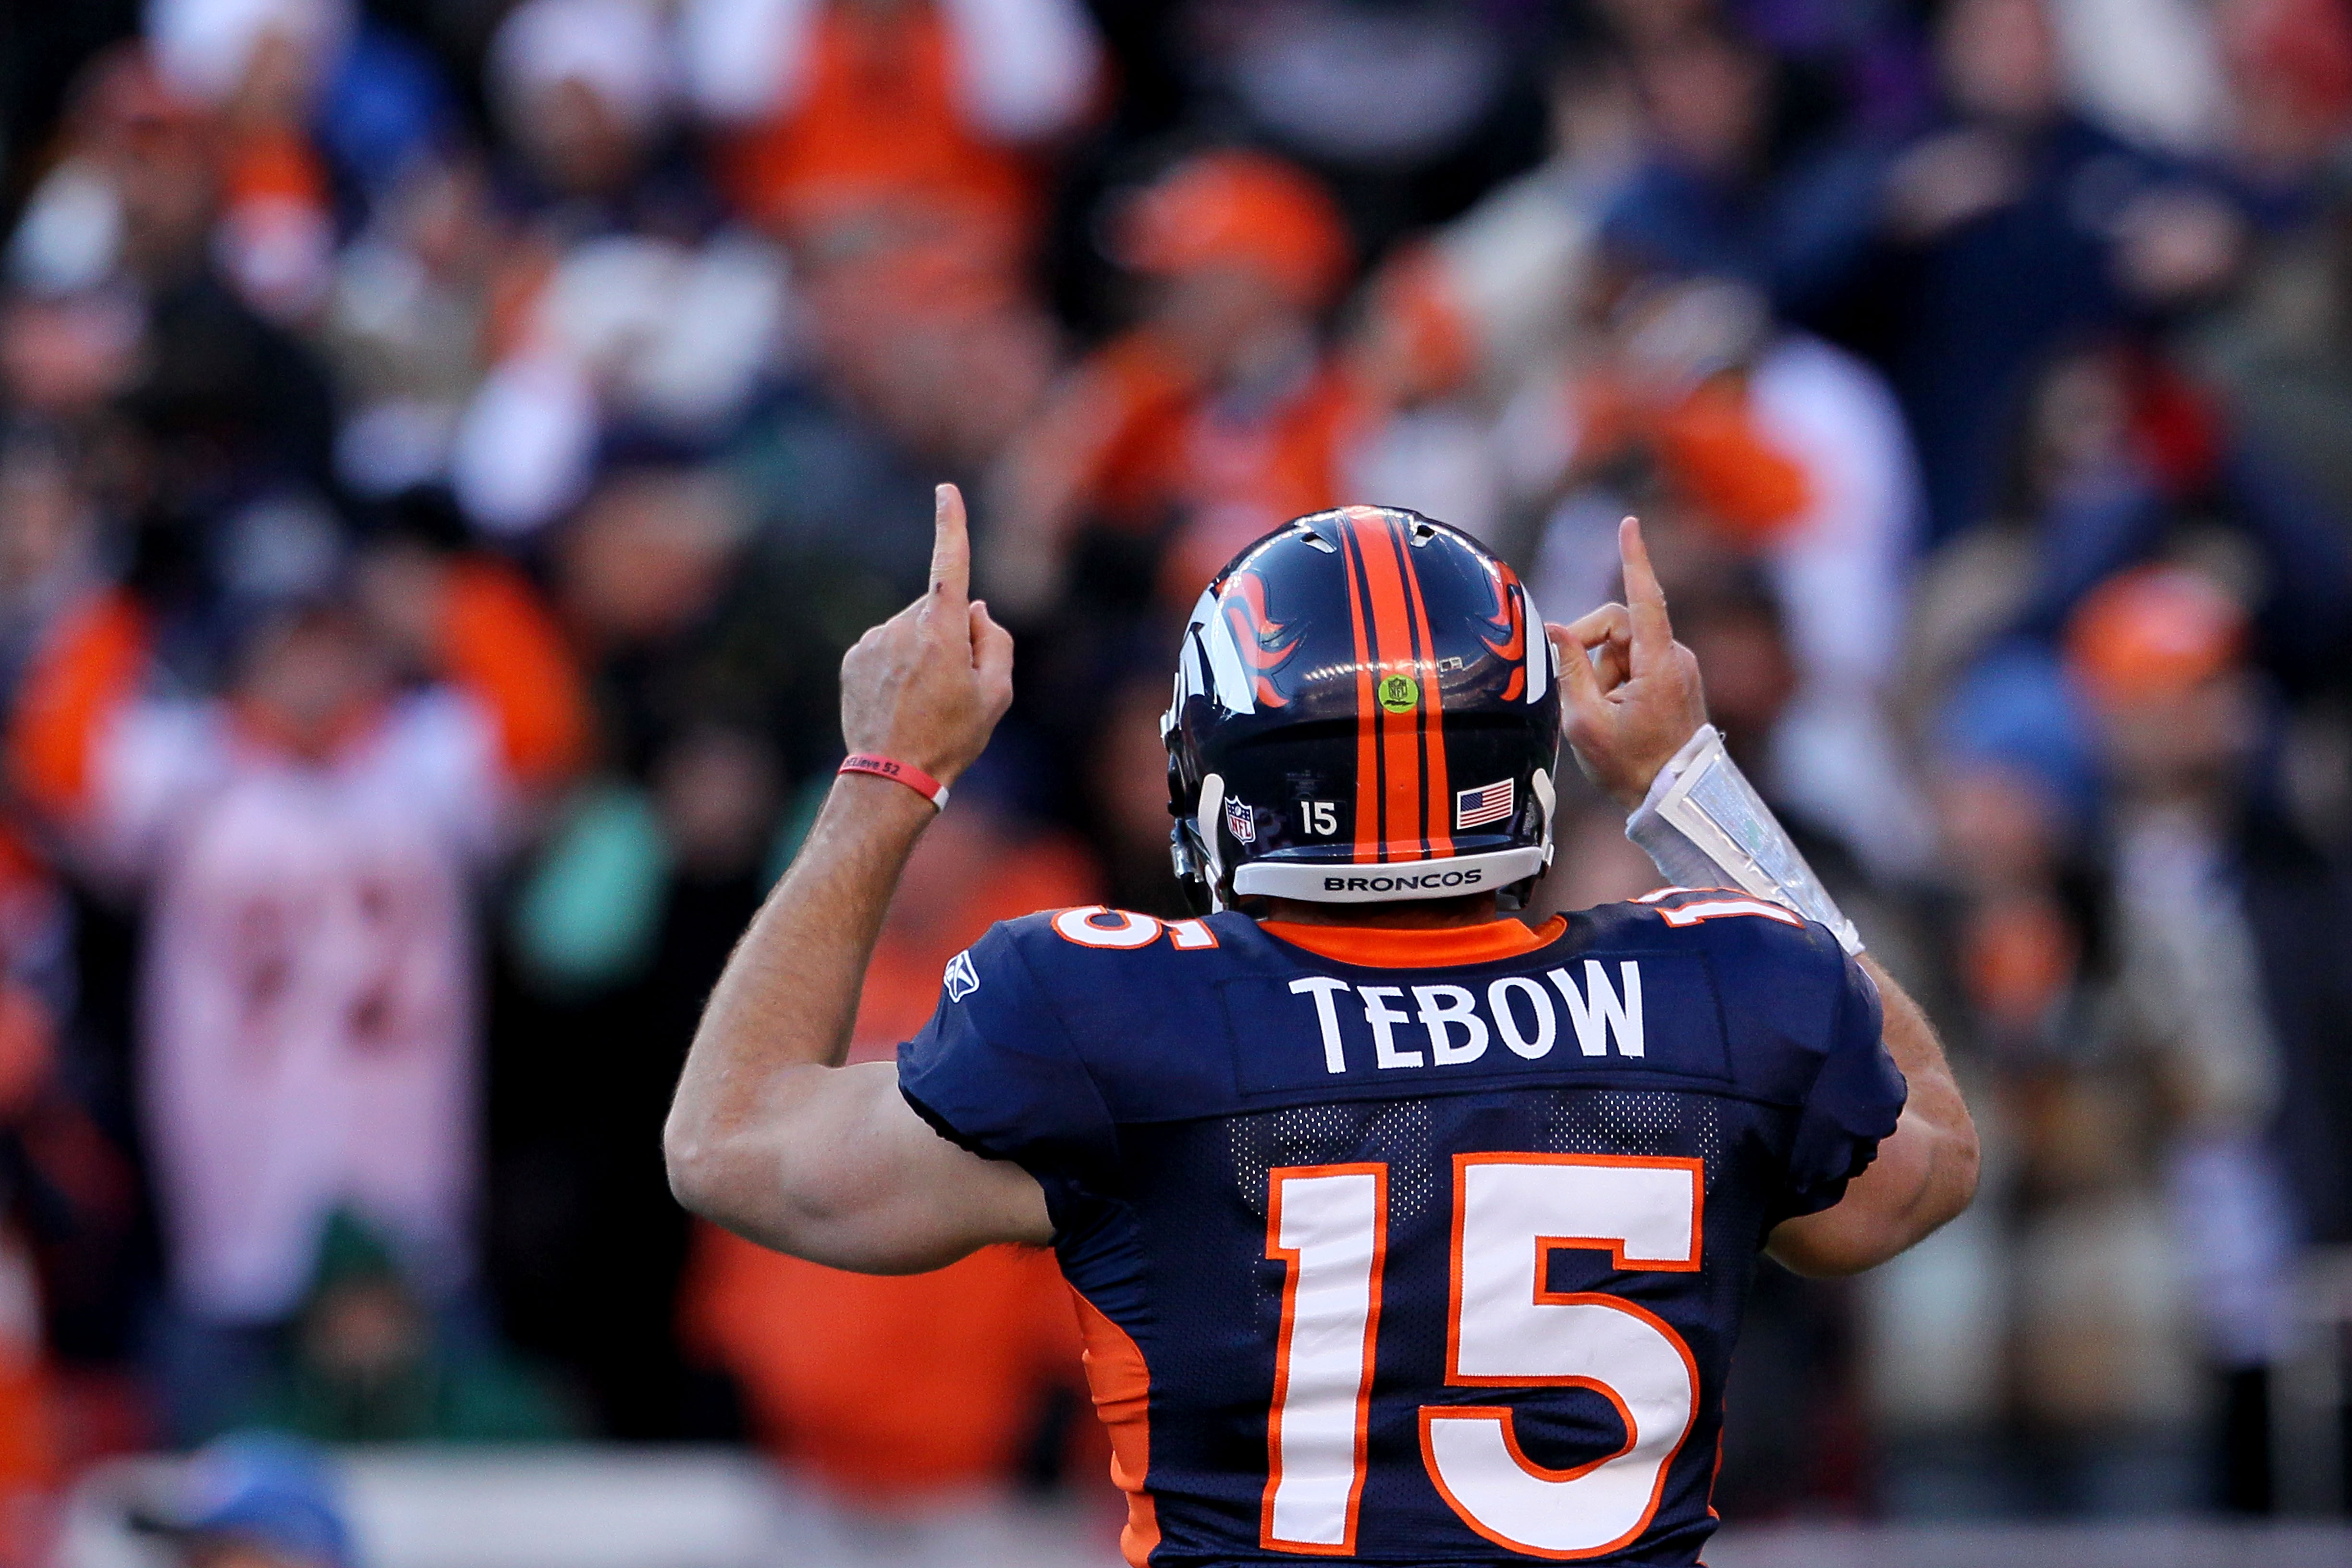 Need to Know News: Tebow makes Steelers pay in OT; Iran sentences American to death in spy case